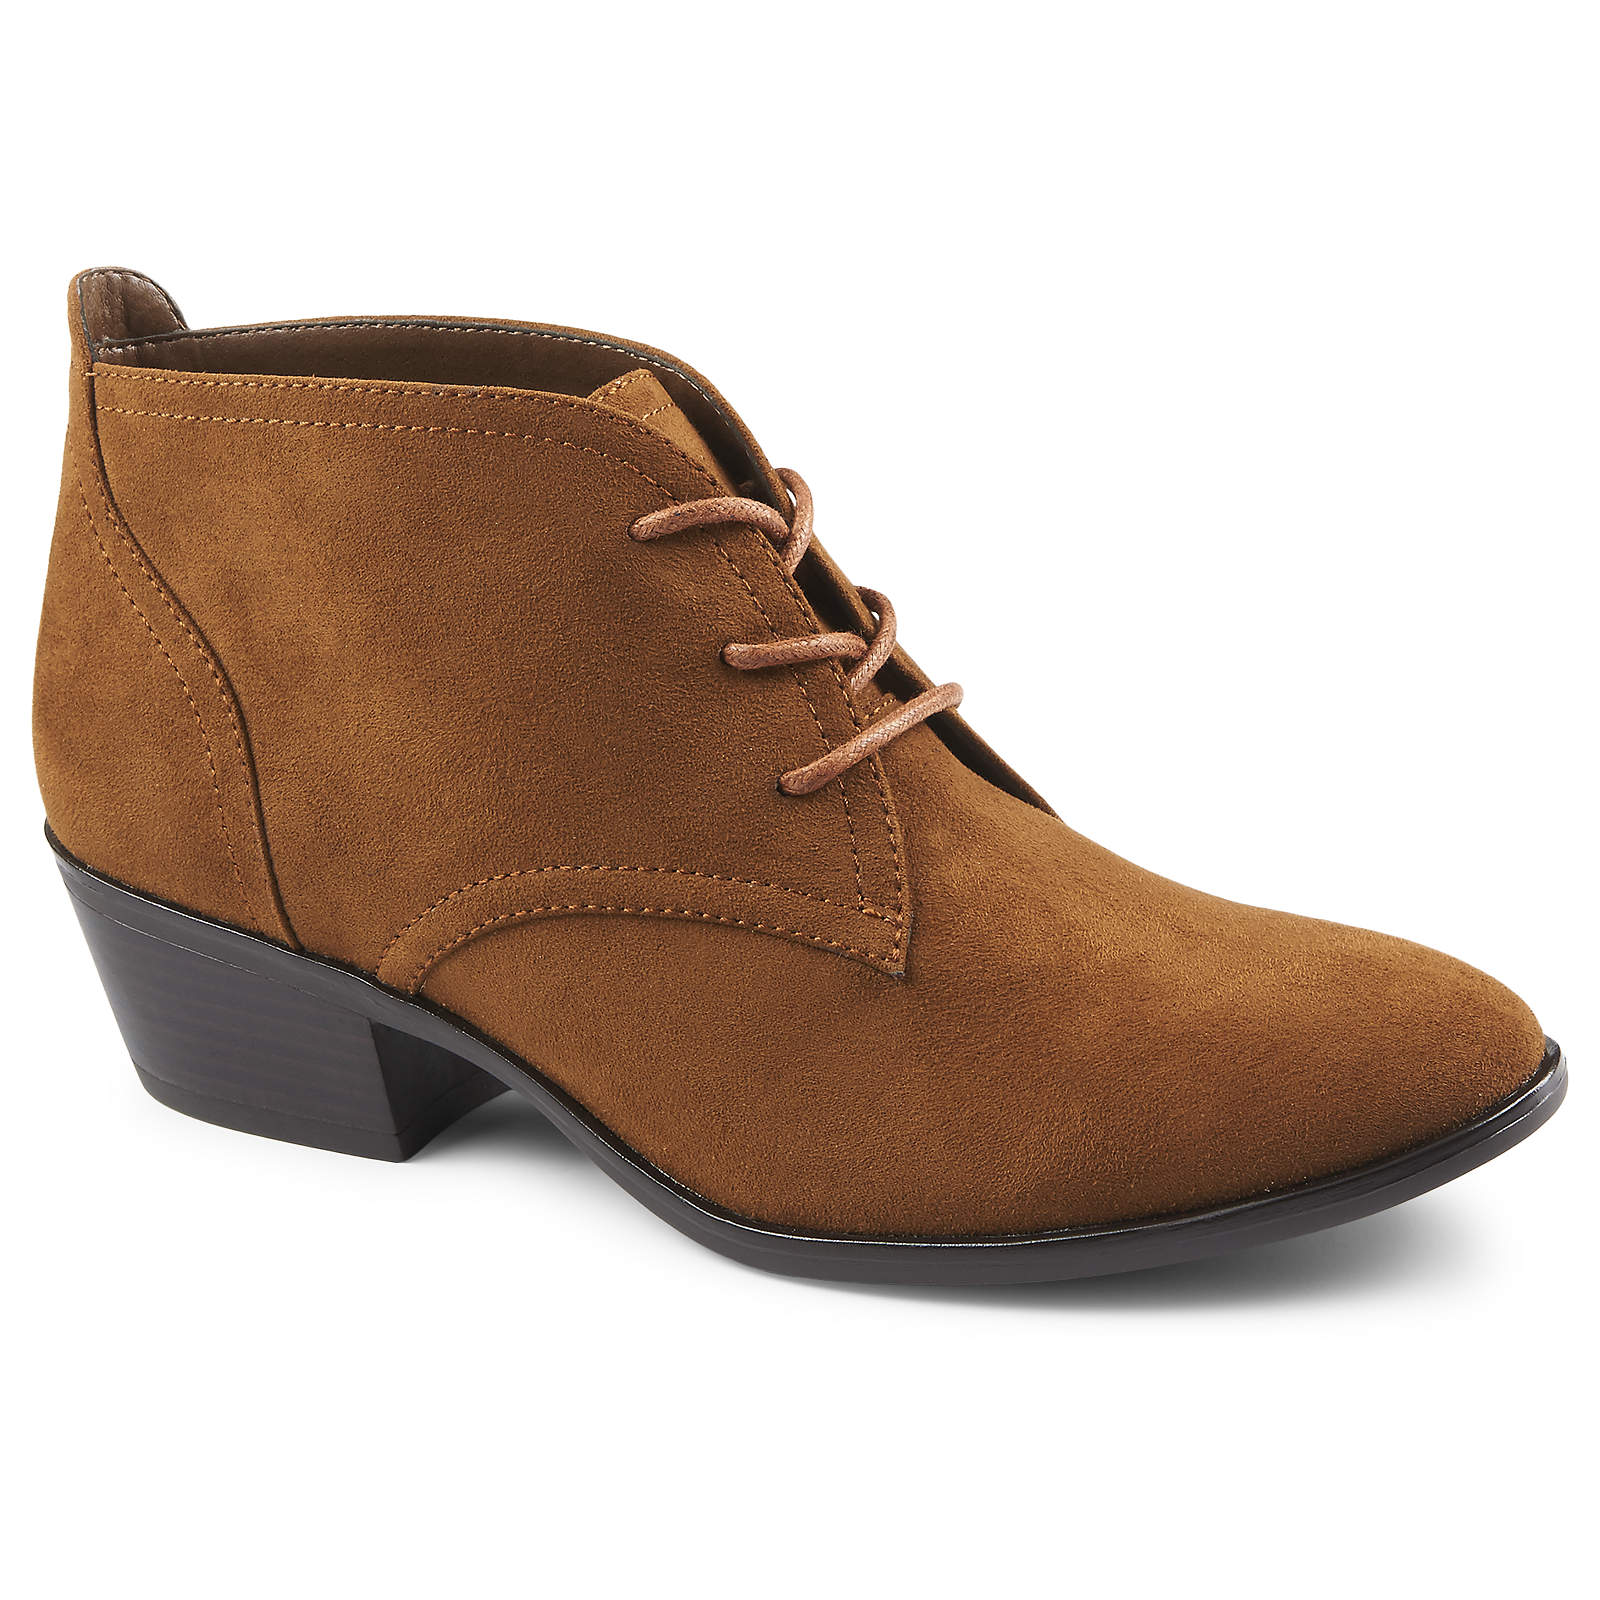 SHOPBOP - Booties FASTEST FREE SHIPPING WORLDWIDE on Booties & FREE EASY RETURNS. hidden honeypot link. Shop Men's Shop Men's Fashion at Jewel Detailed Pointy Toe Ankle Booties $ $ $ Tibi Joe Short Booties $ $ $ Tibi .